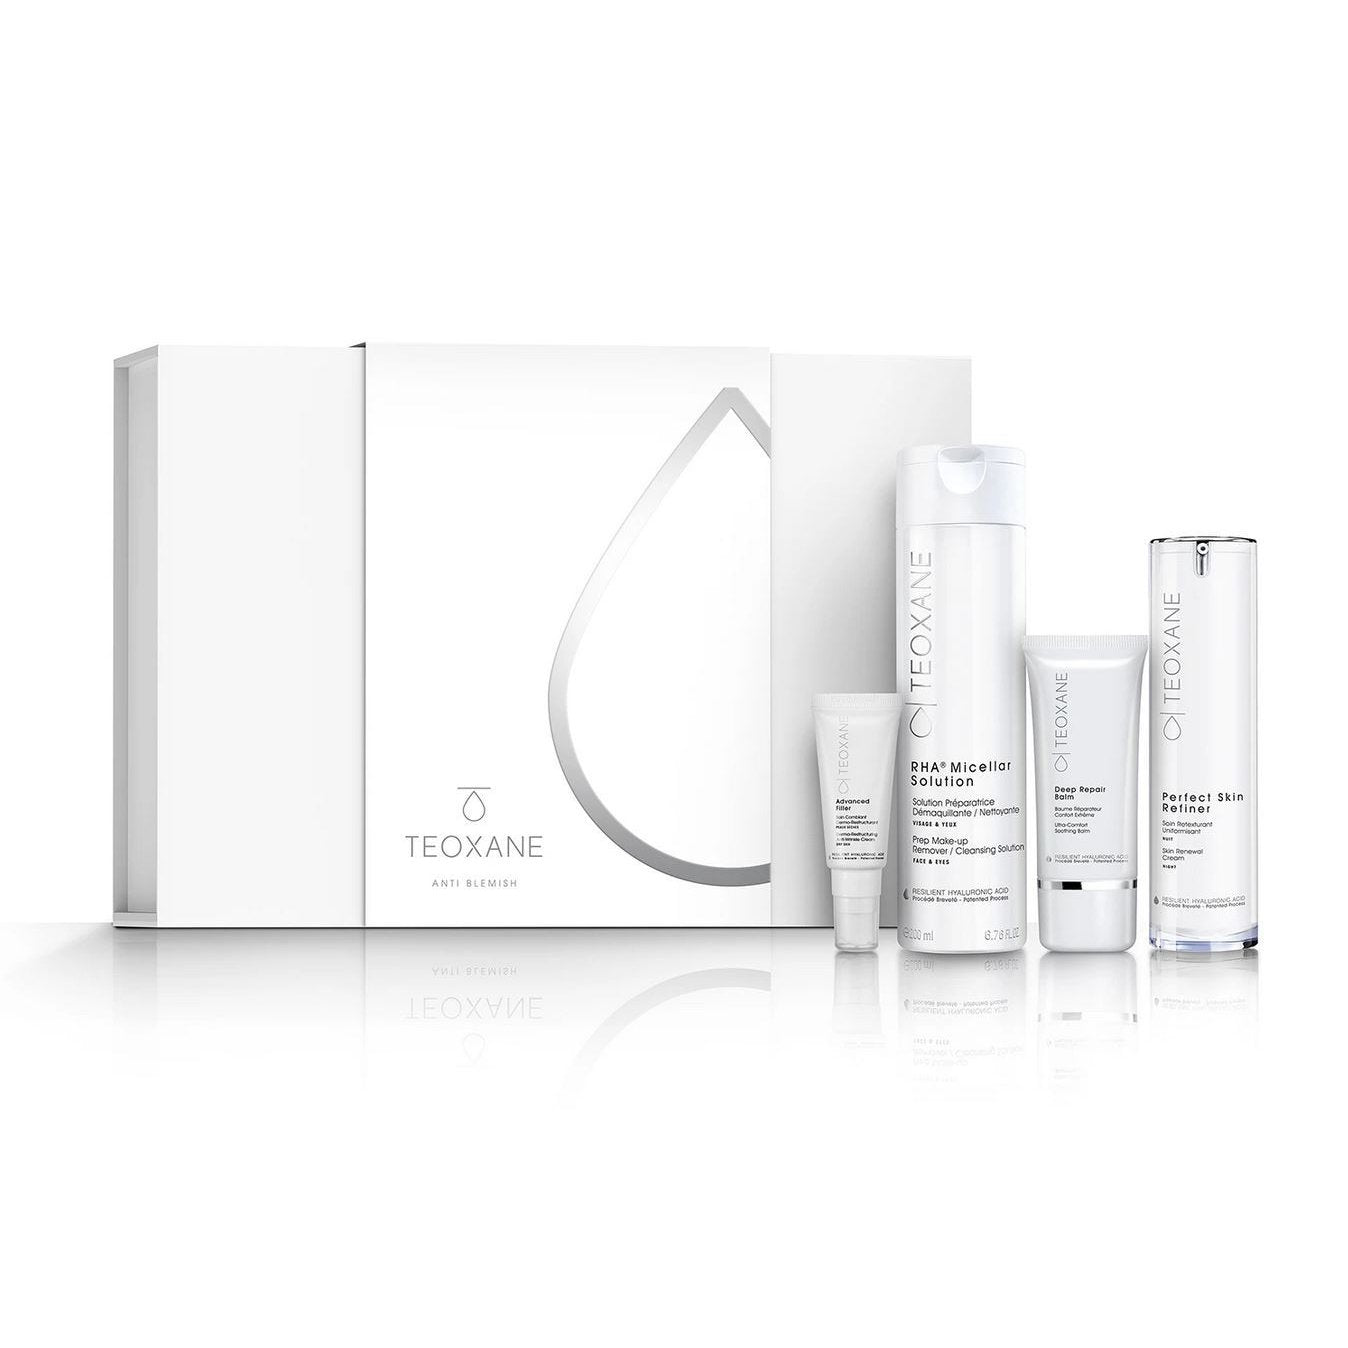 Teoxane Anti Blemish Skincare Collection-The Facial Rejuvenation Clinic